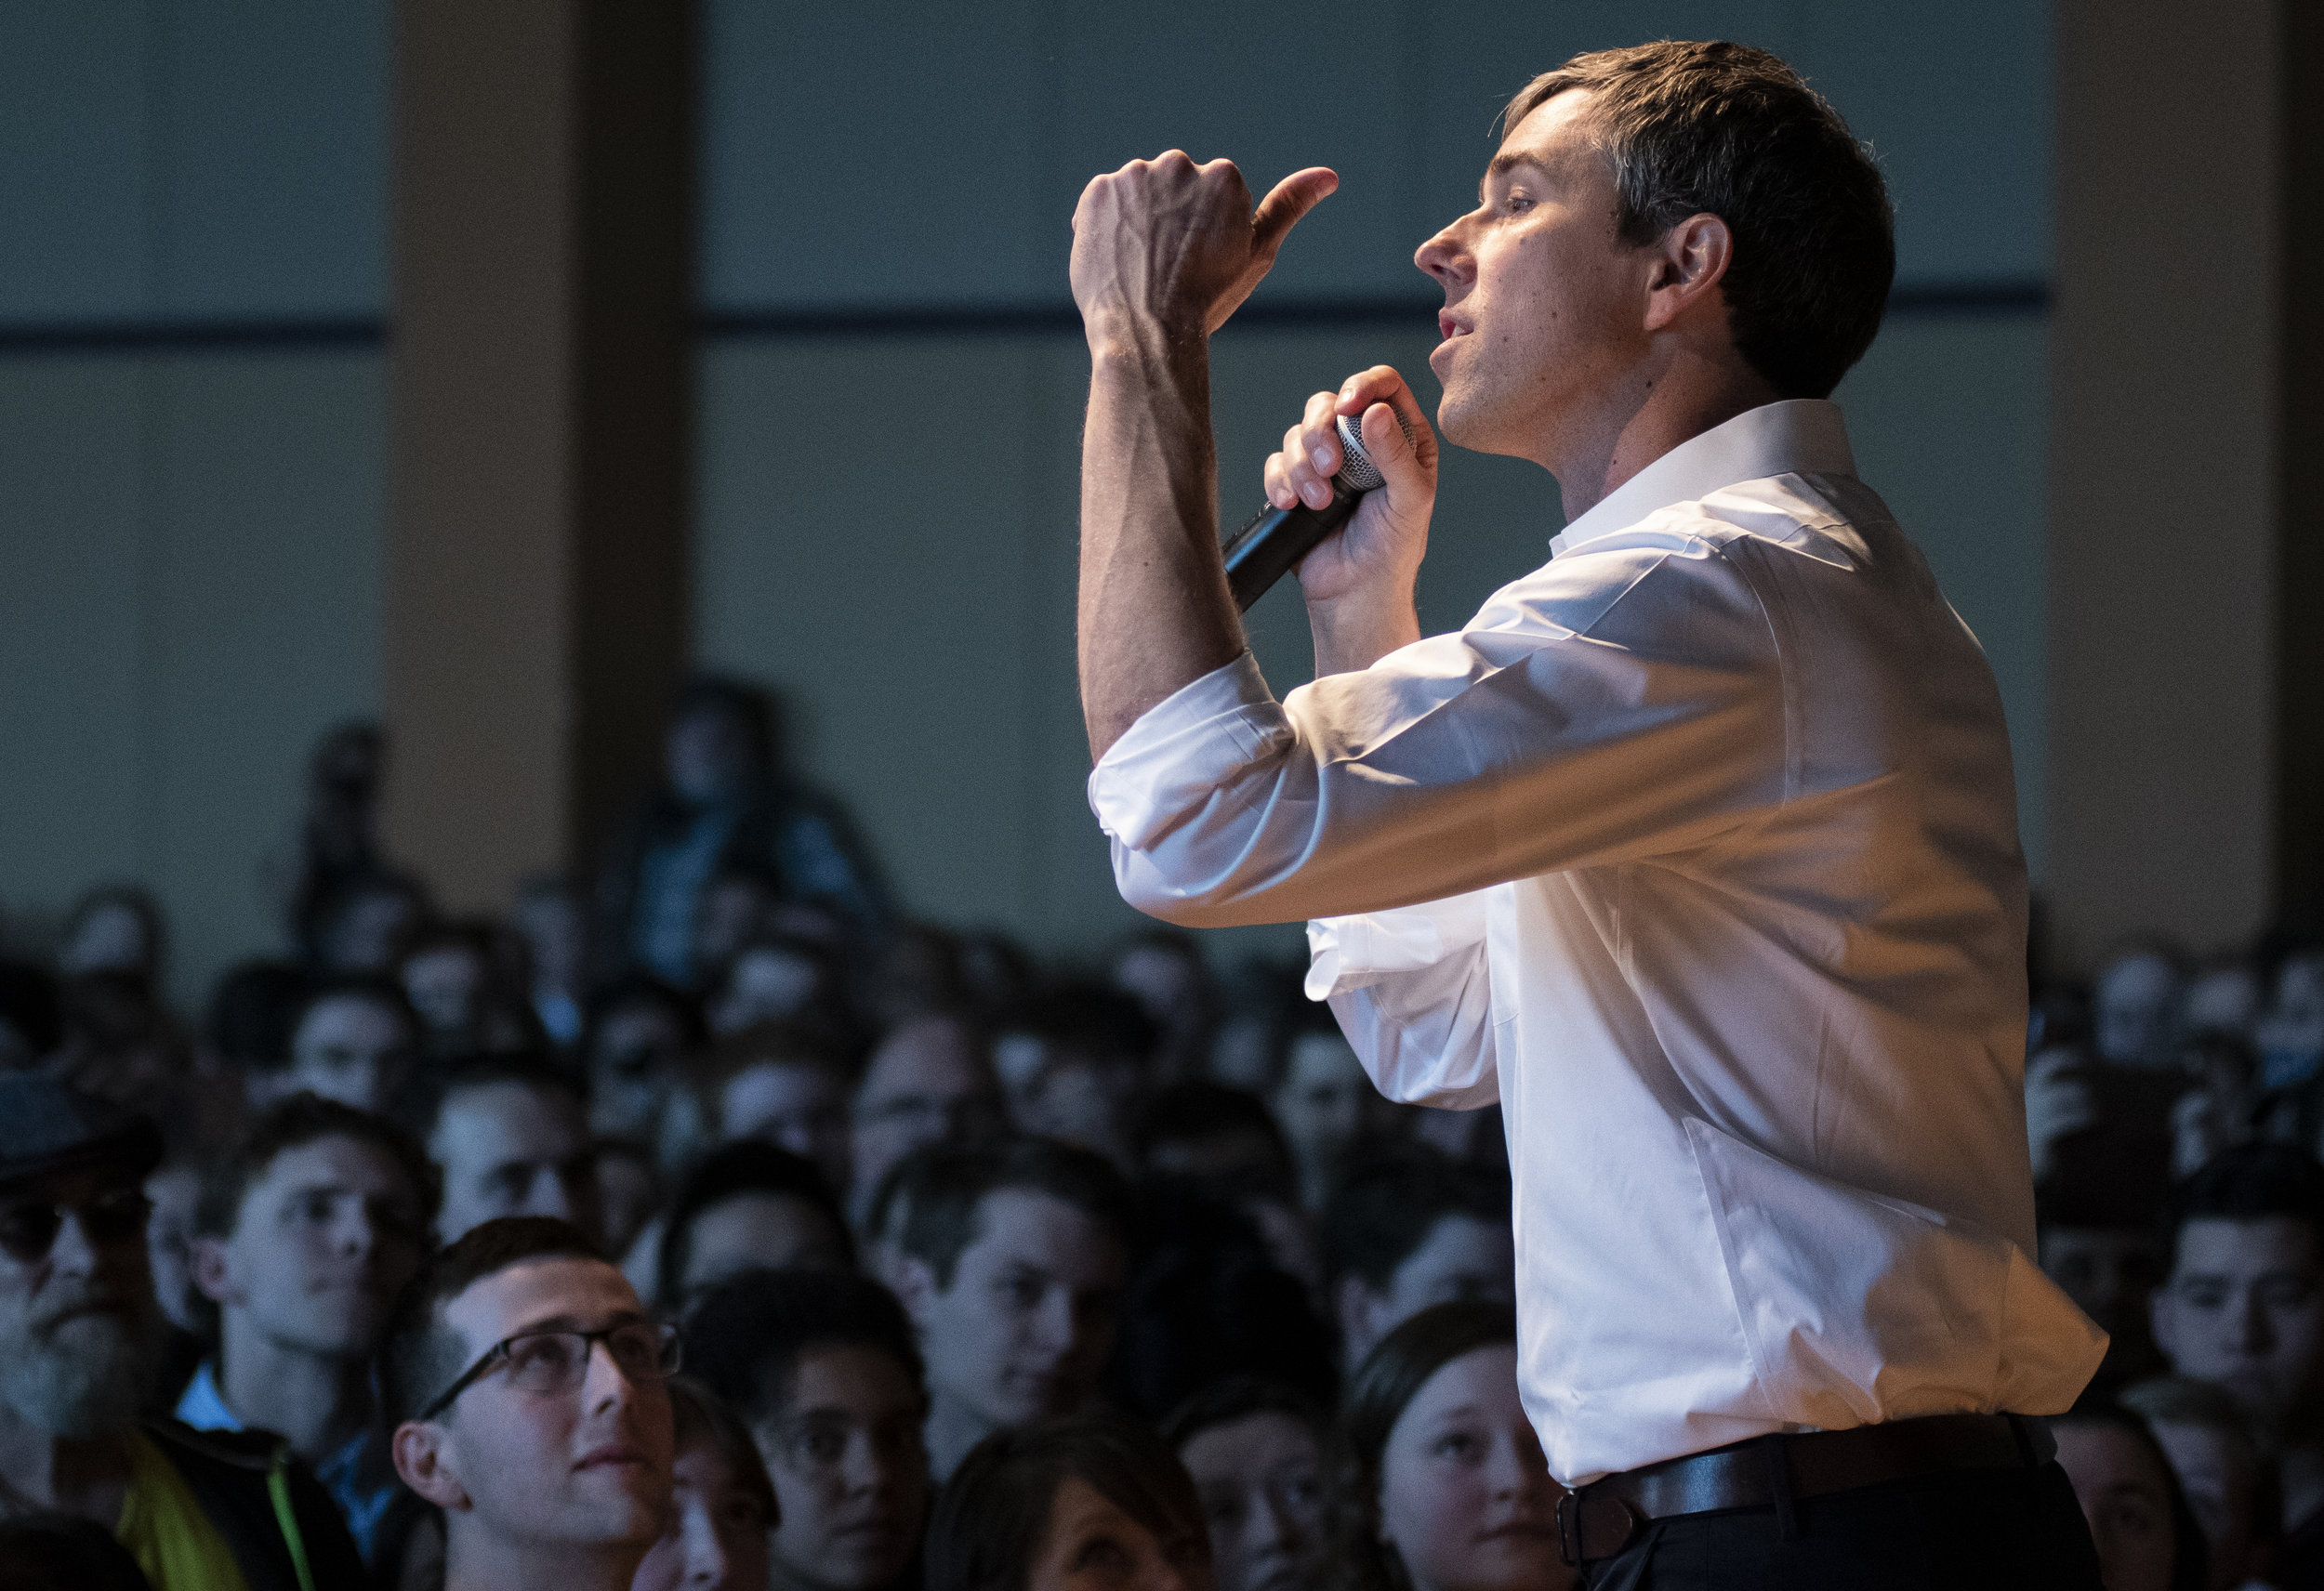 Democratic presidential candidate Beto O'Rourke speaks to a crowd in Heritage Hall during his meet and greet on Tuesday, March 19, 2019 at the HUB Building at Penn State University. | Photo by: Noah Riffe